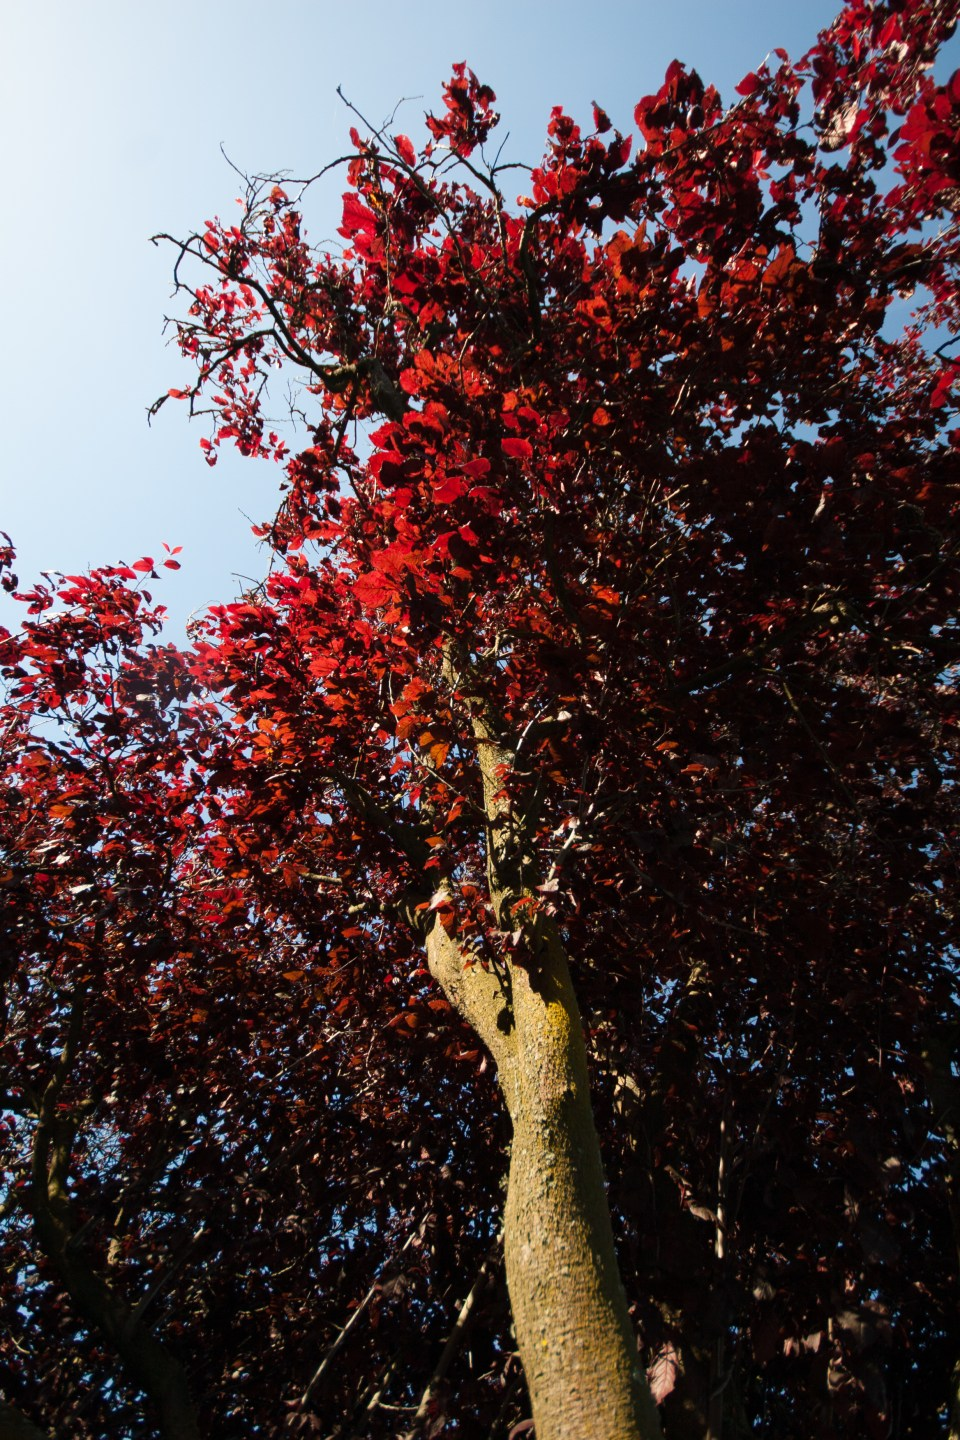 trees red leaves lit up by the sun glowing red